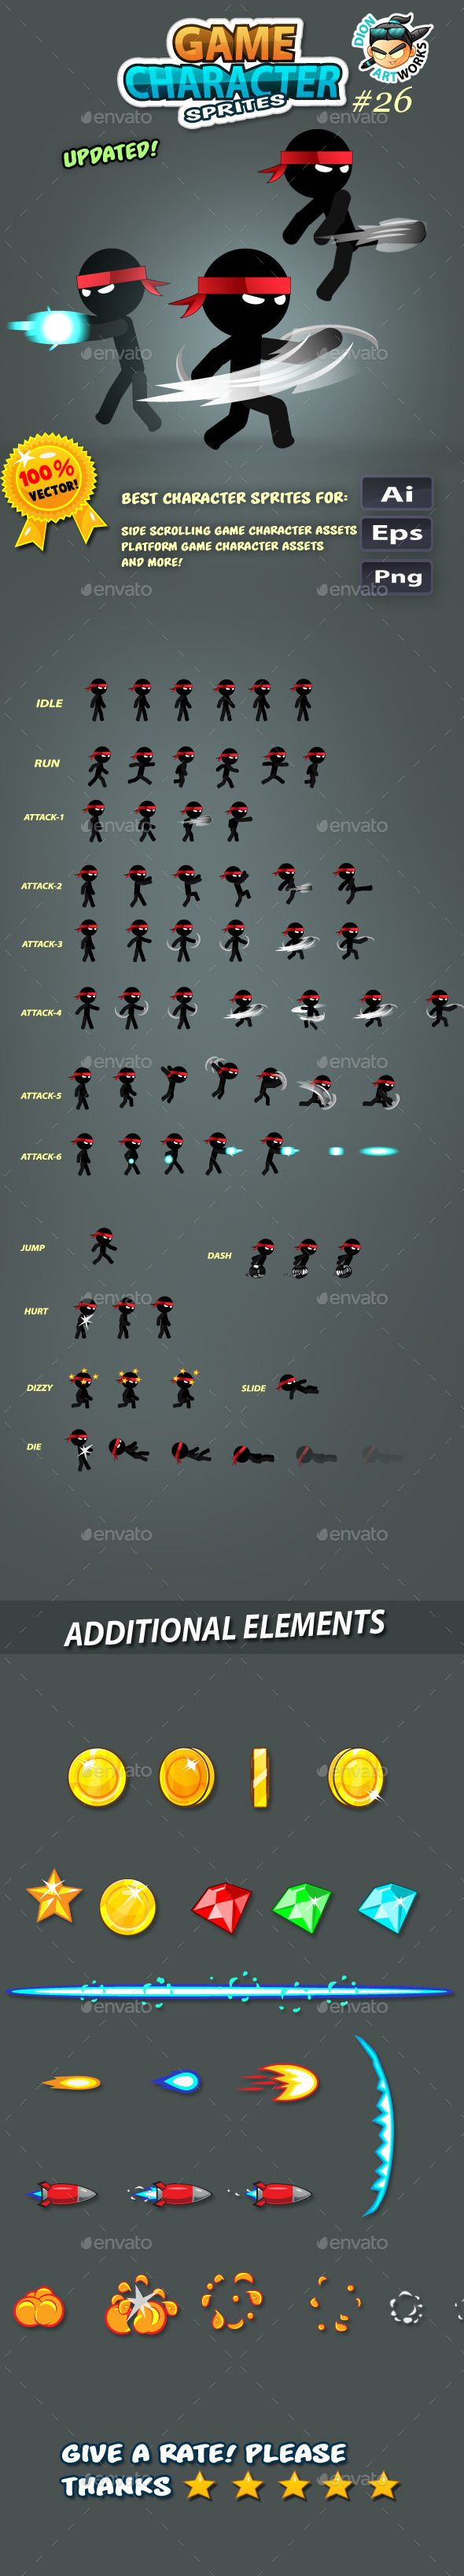 Ninja Stickman Game Character Sprites 26 This assets is for developers who want to create their mobile game apps for IOS and Android games and need Game Character Spritesheets for their projects.